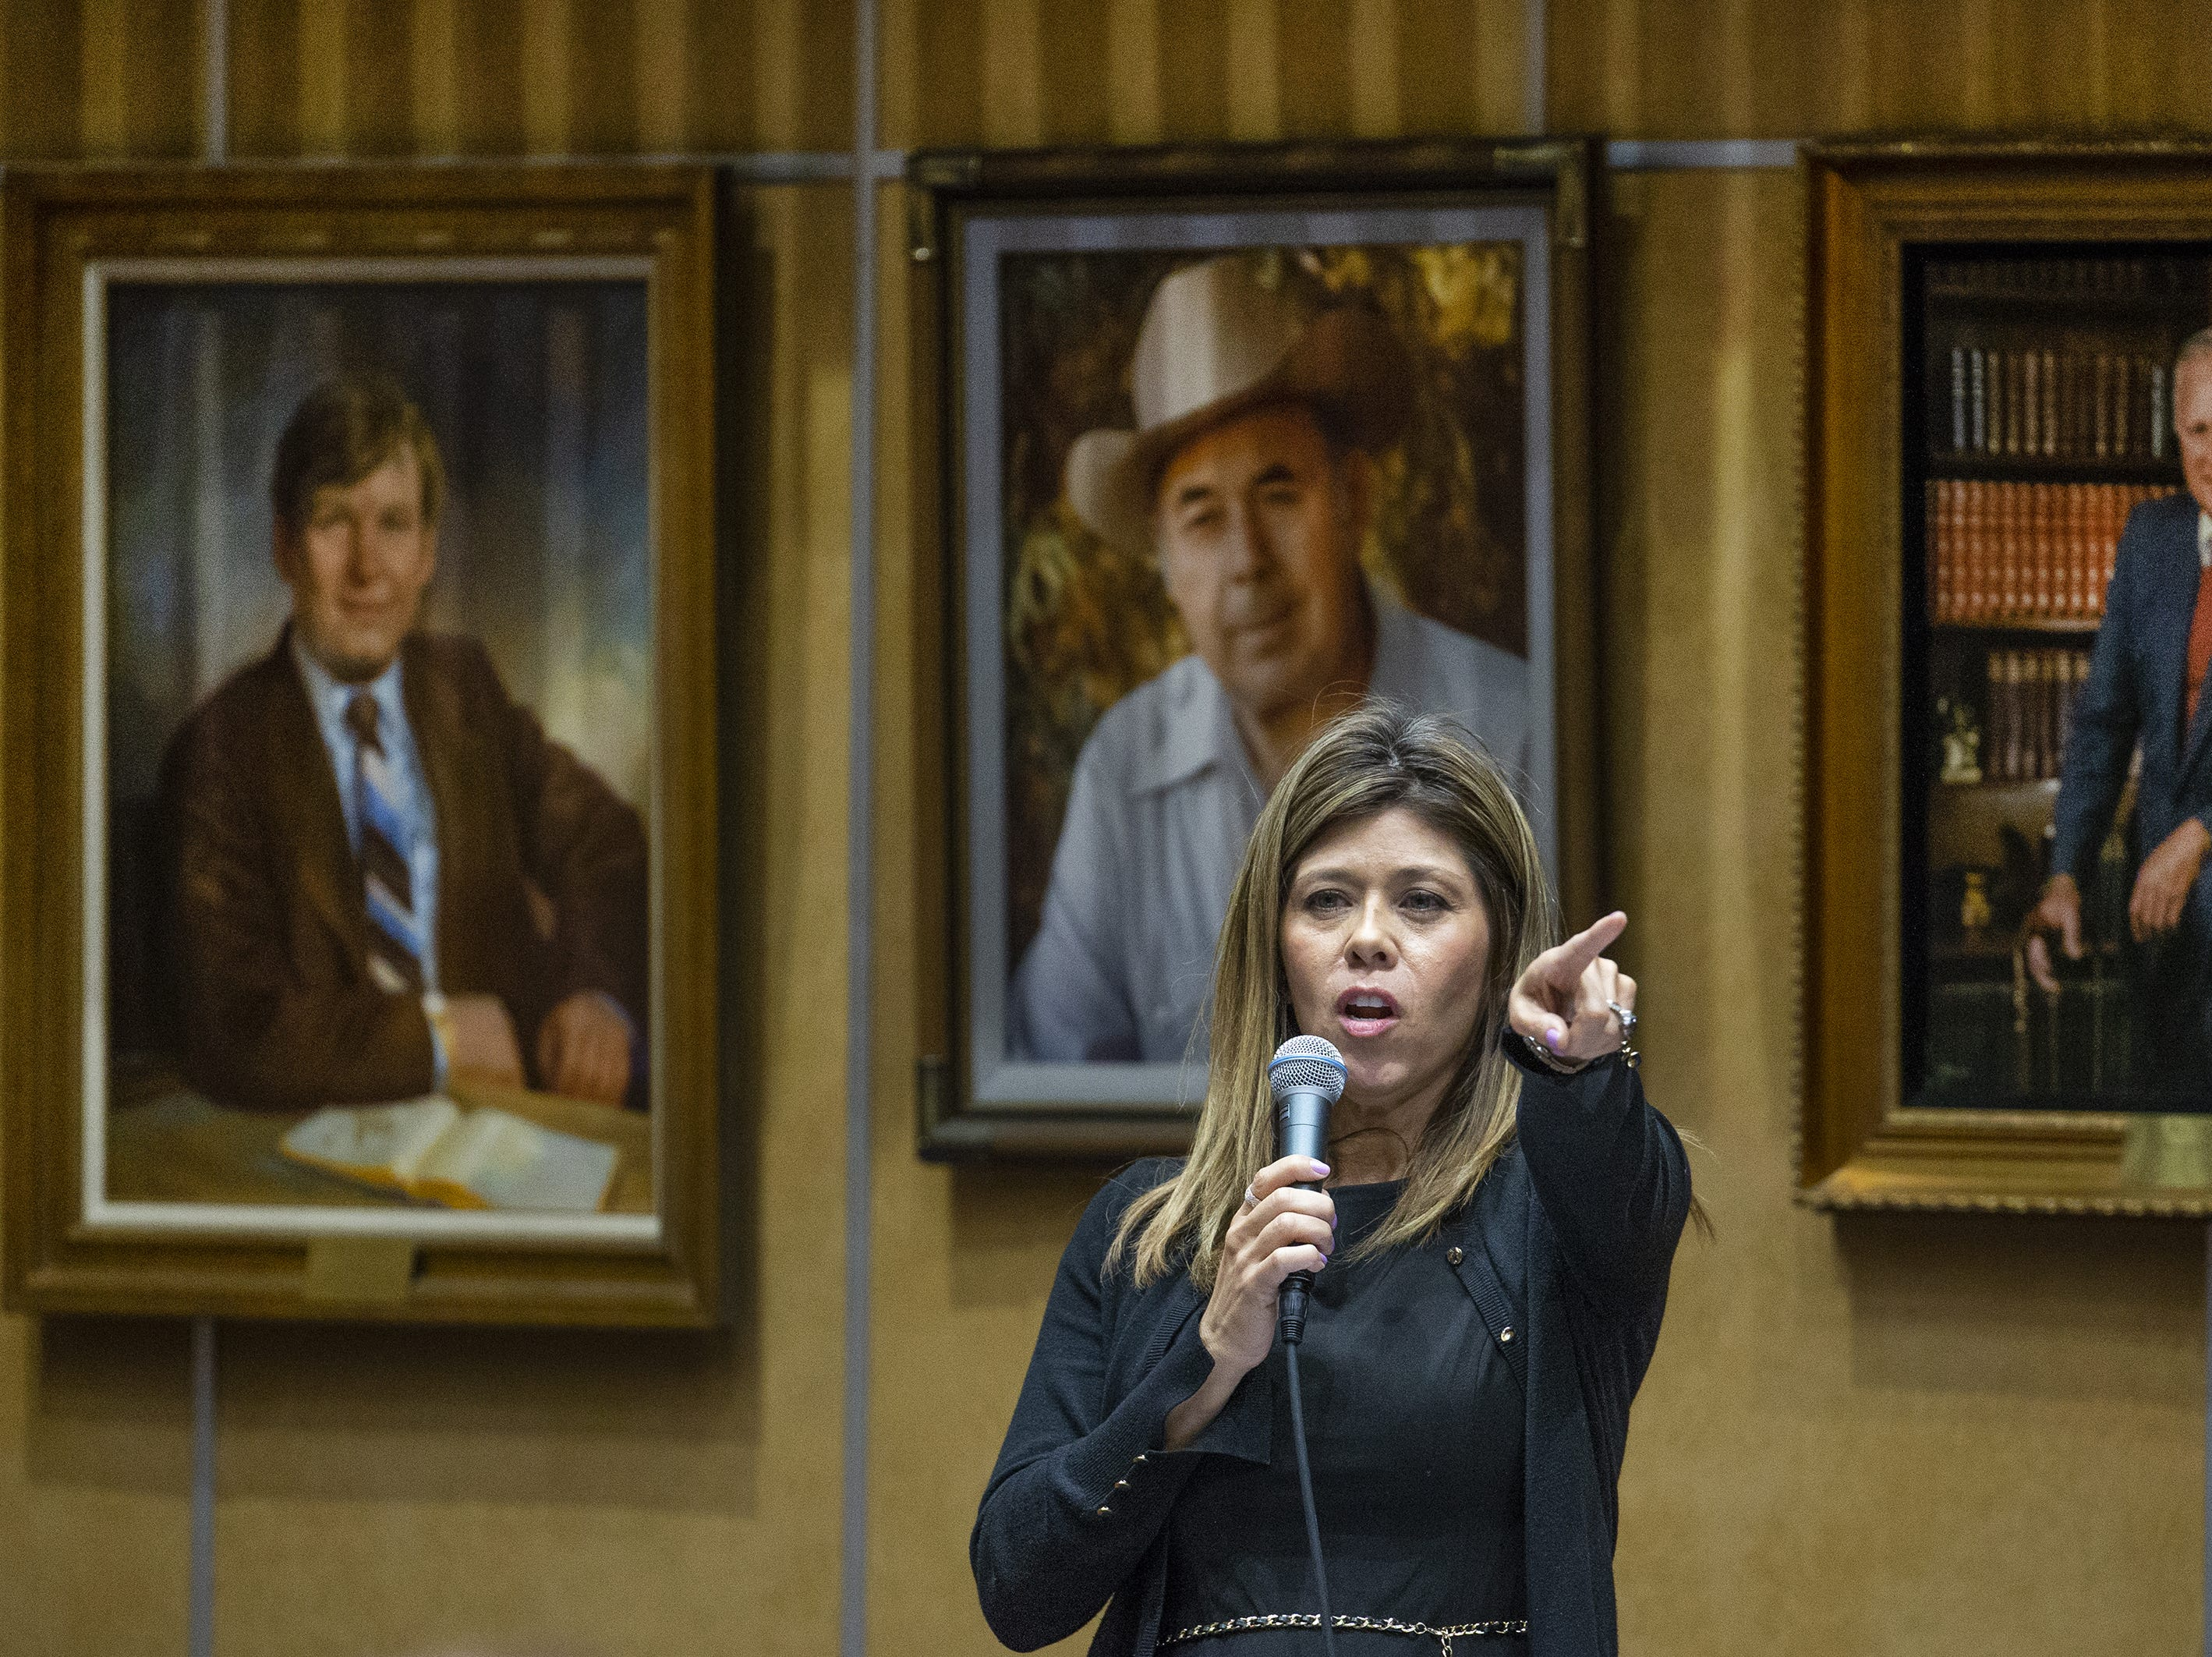 Sen. Rebecca Rios voices her support for the ERA during a speech on the floor of the Senate at the Capitol in Phoenix, March 13, 2019.